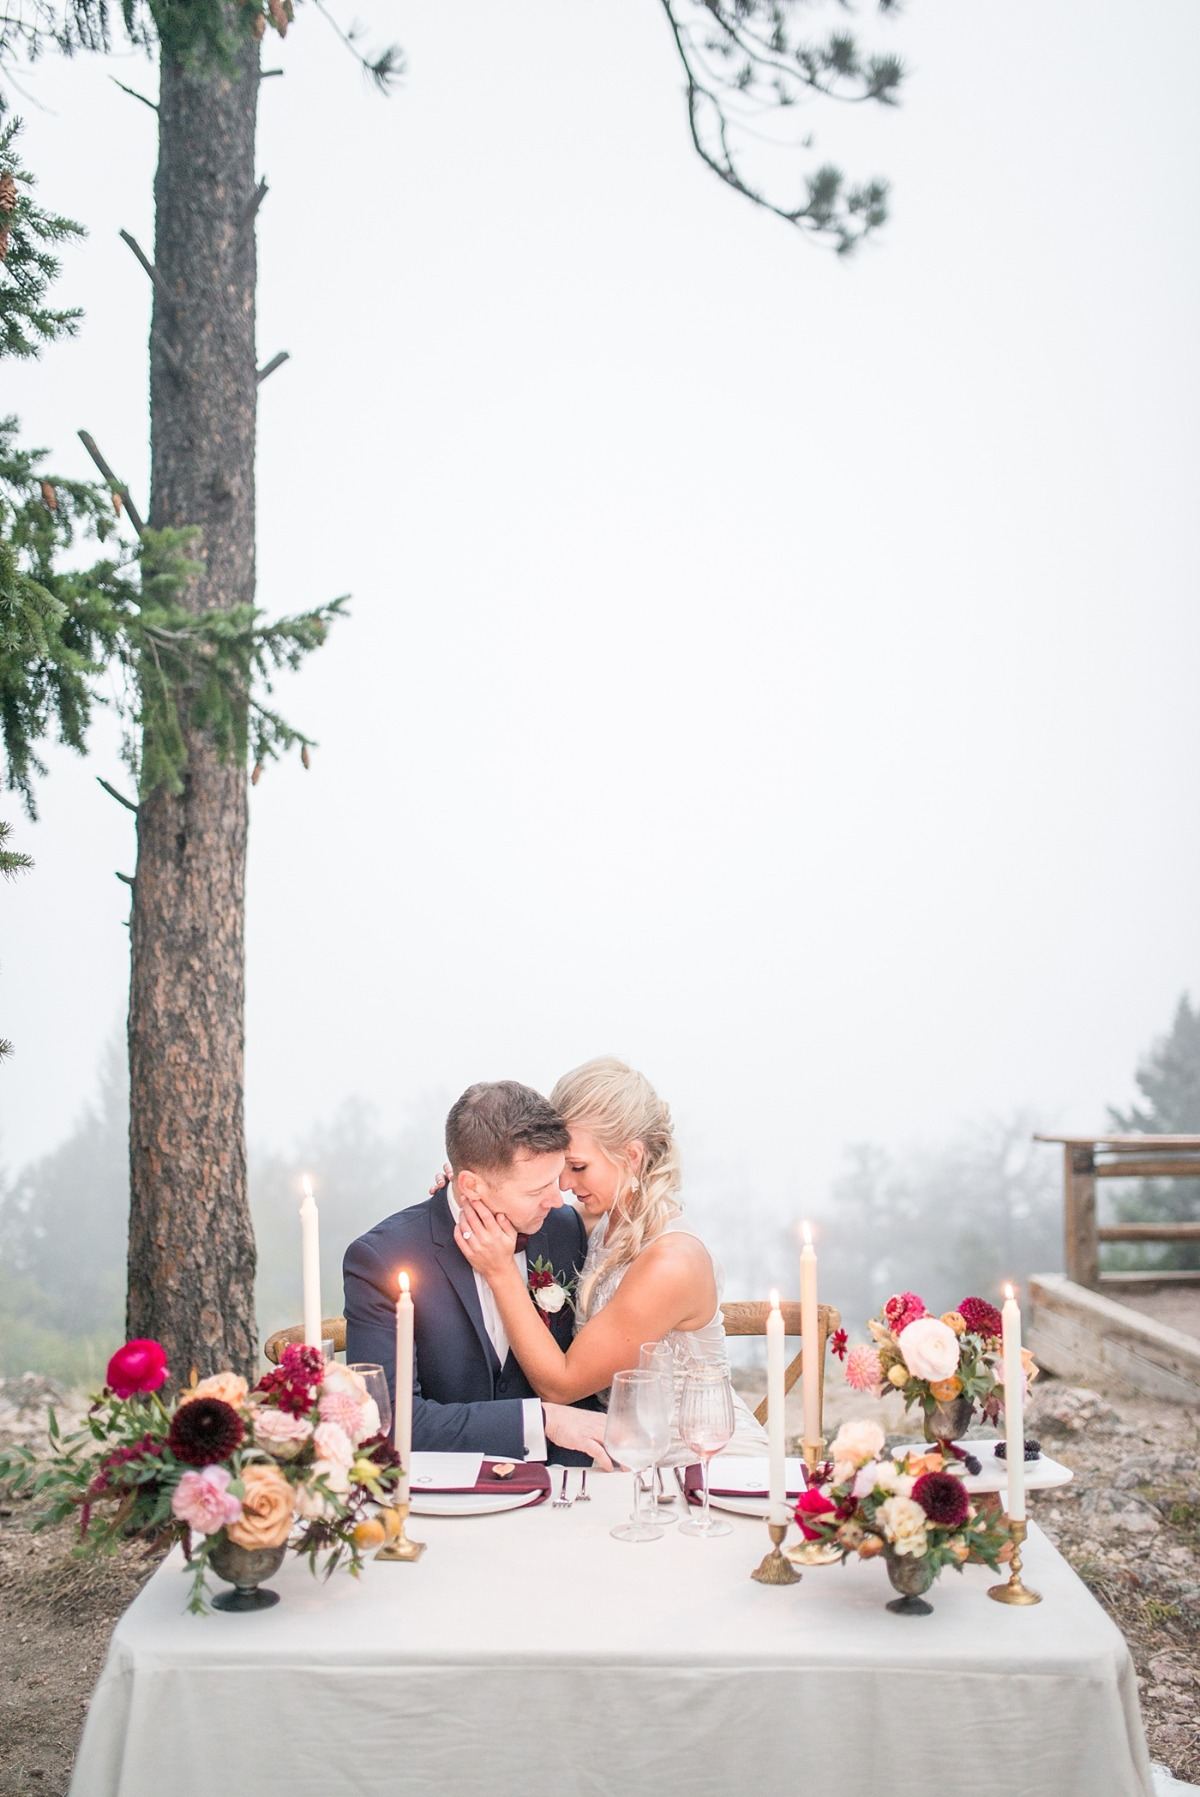 Misty mountain wedding inspiration